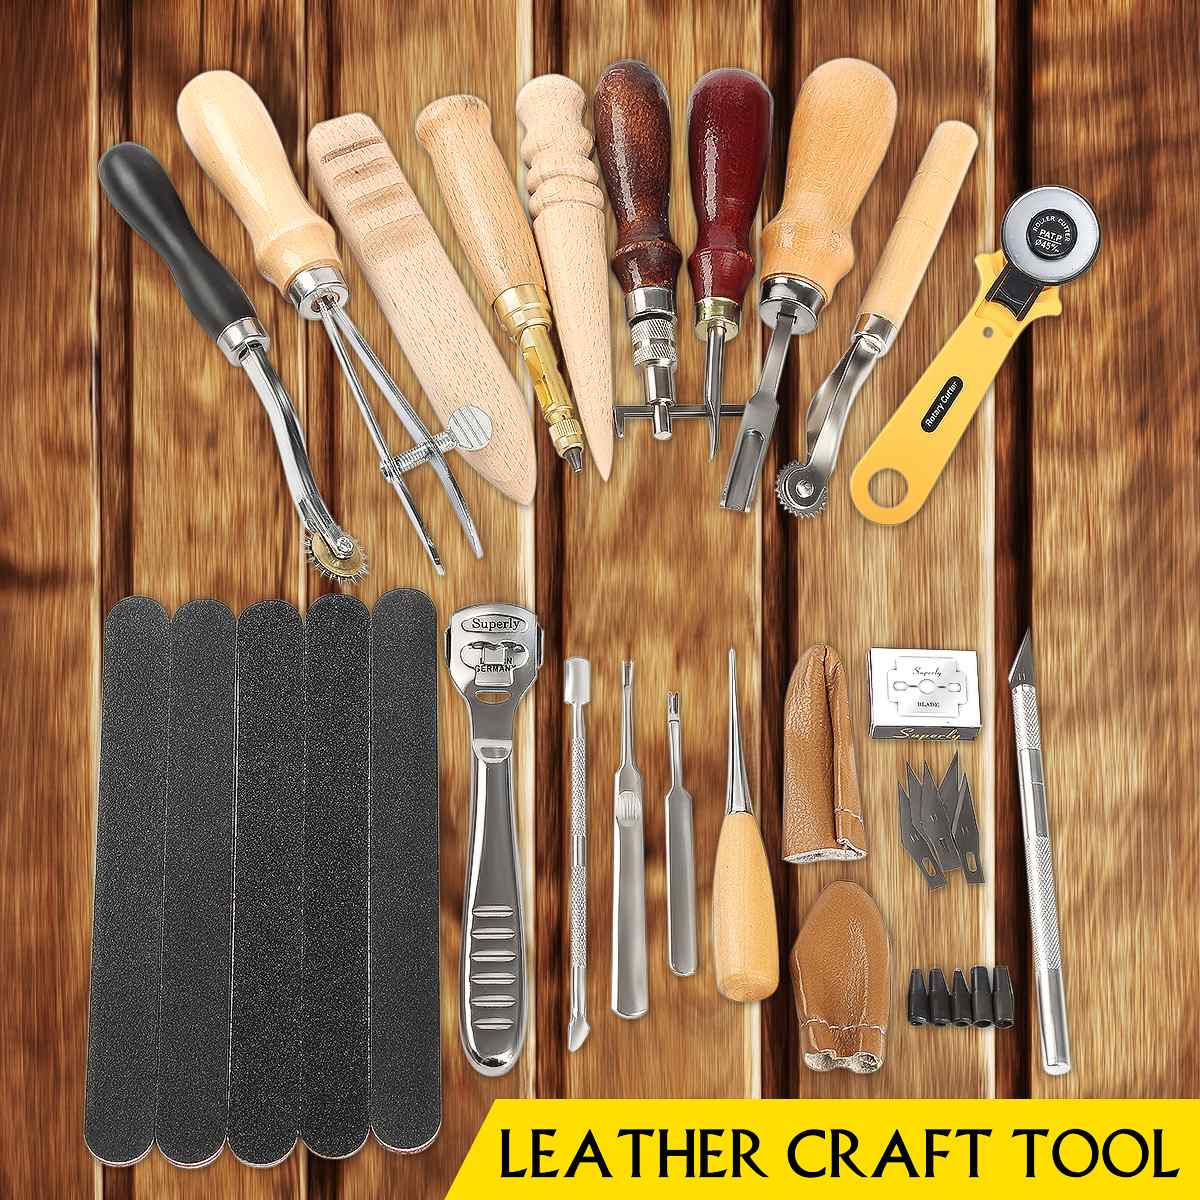 60Pcs Professional Leather Craft Tools Kit for Hand Sewing Stitching Working Wheels Stamping Punch Tools Set